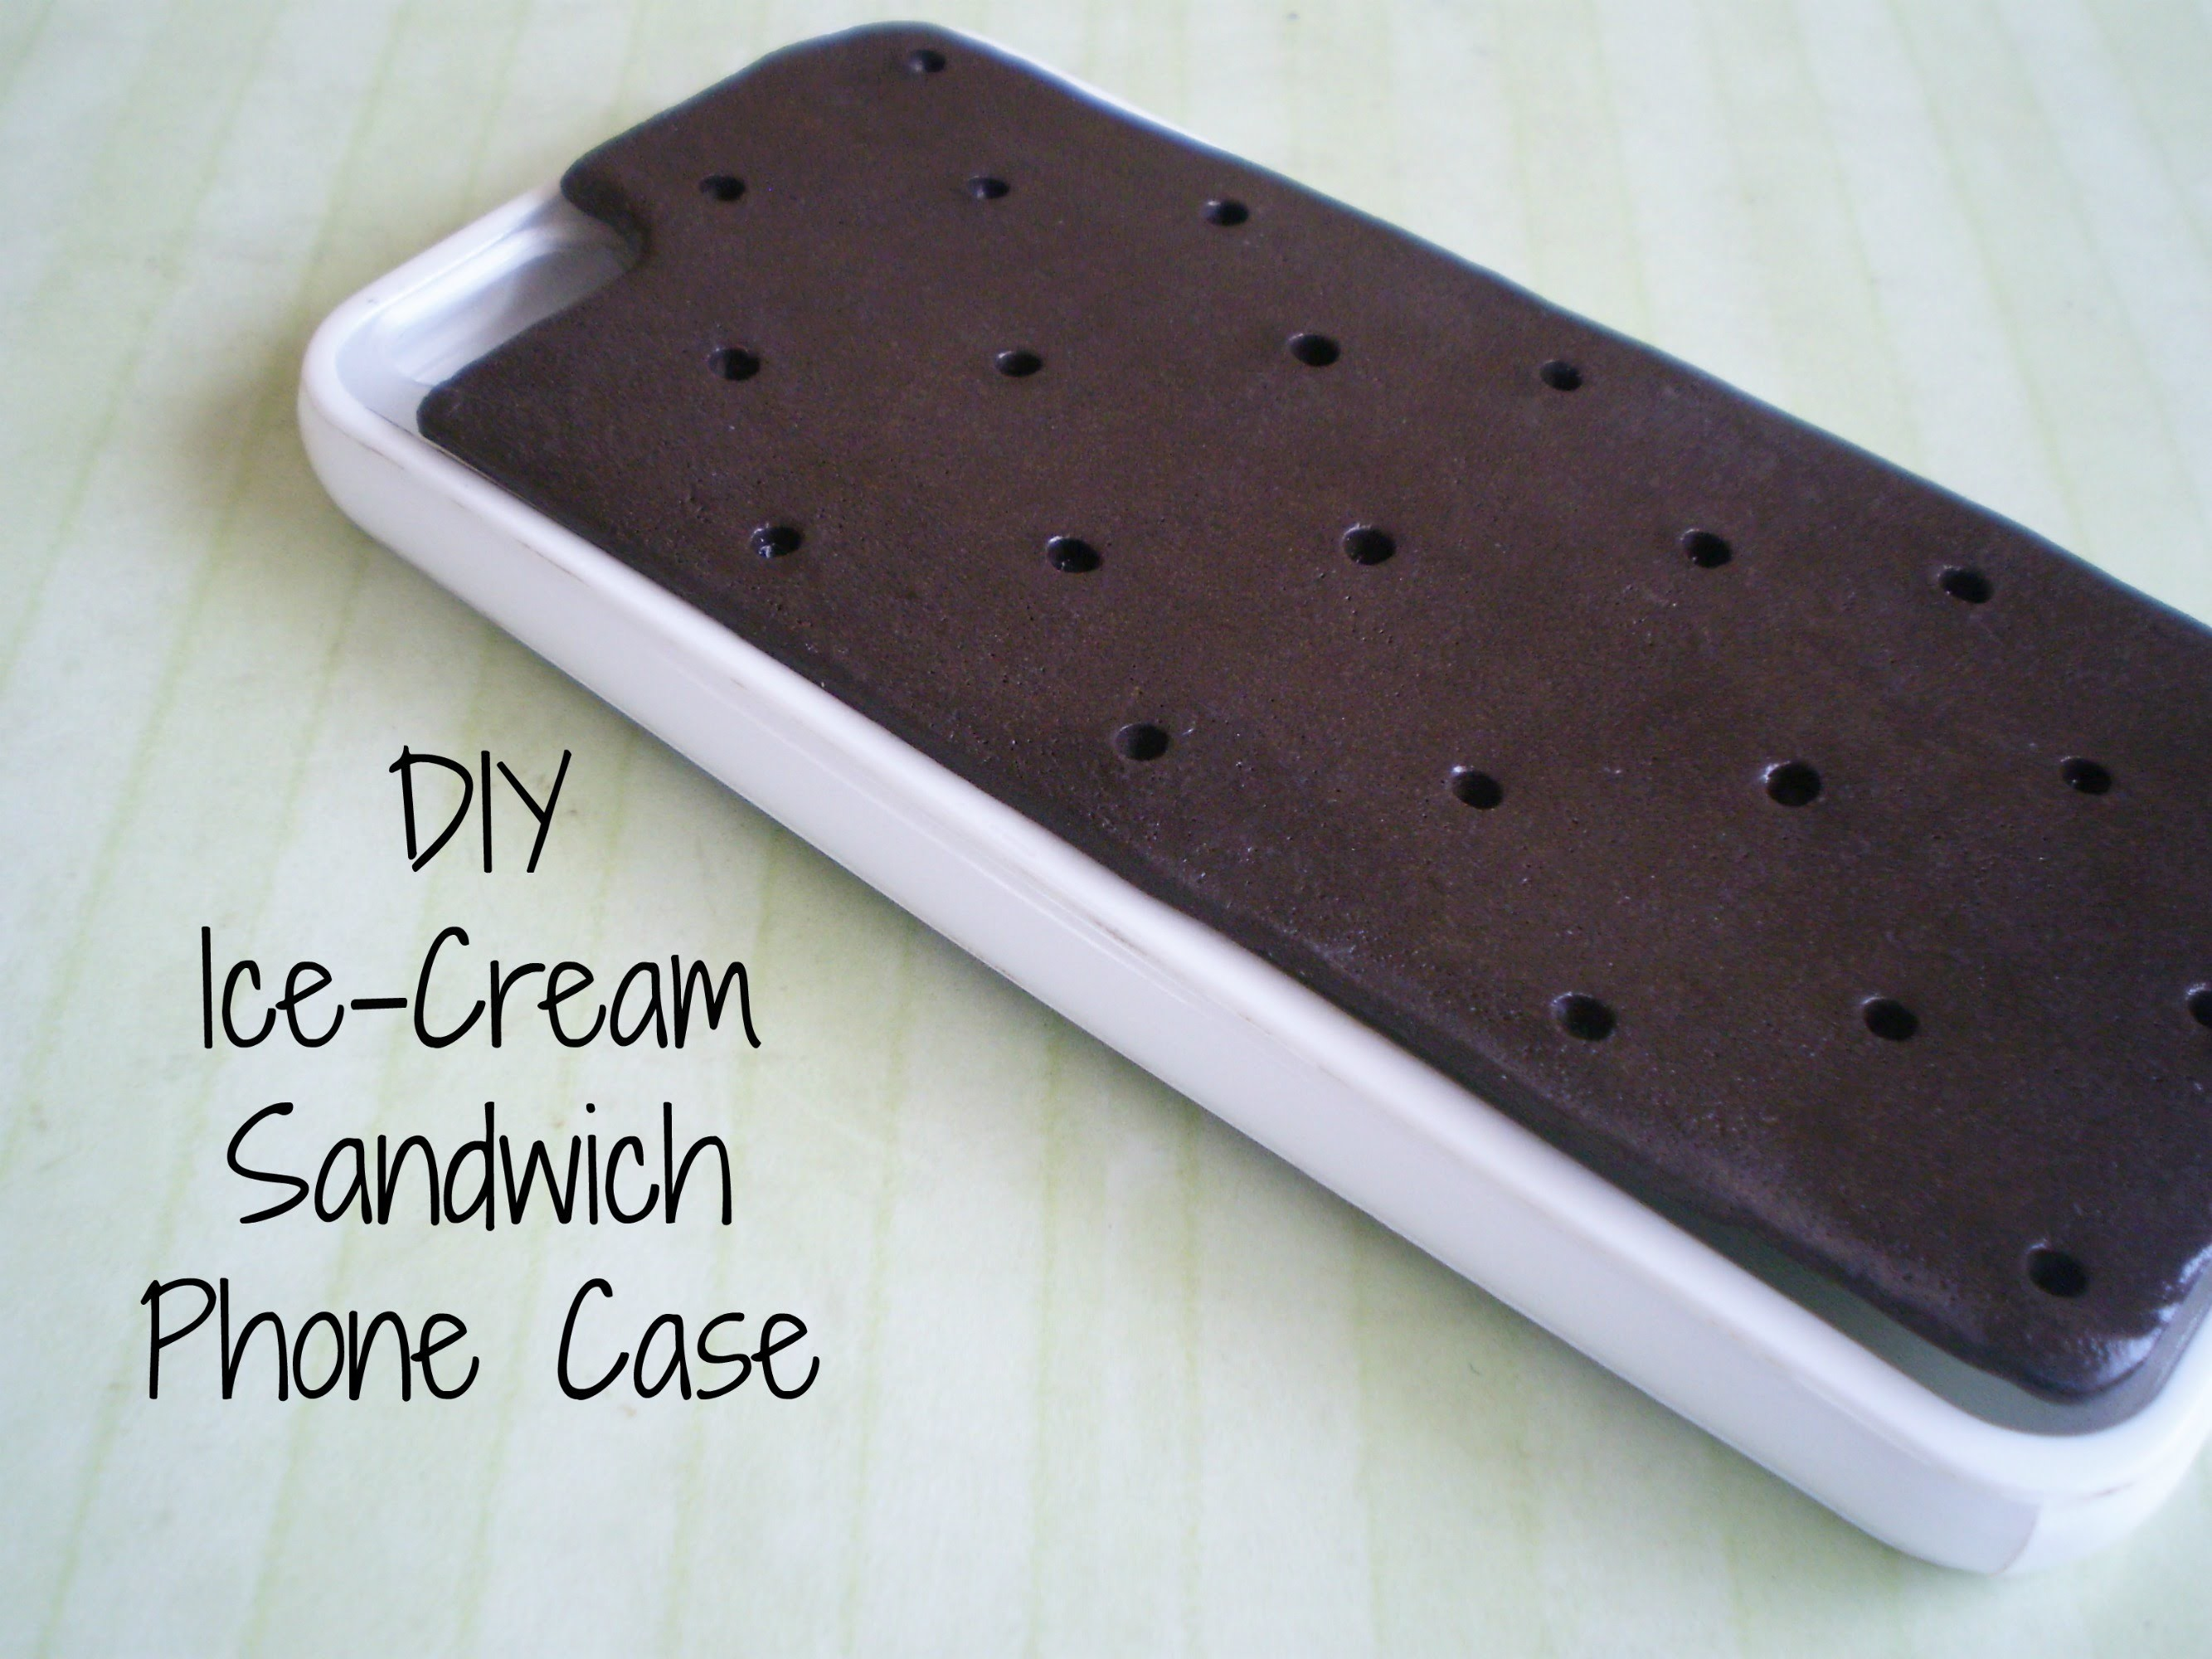 DIY Icecream Sandwich Phone Case!